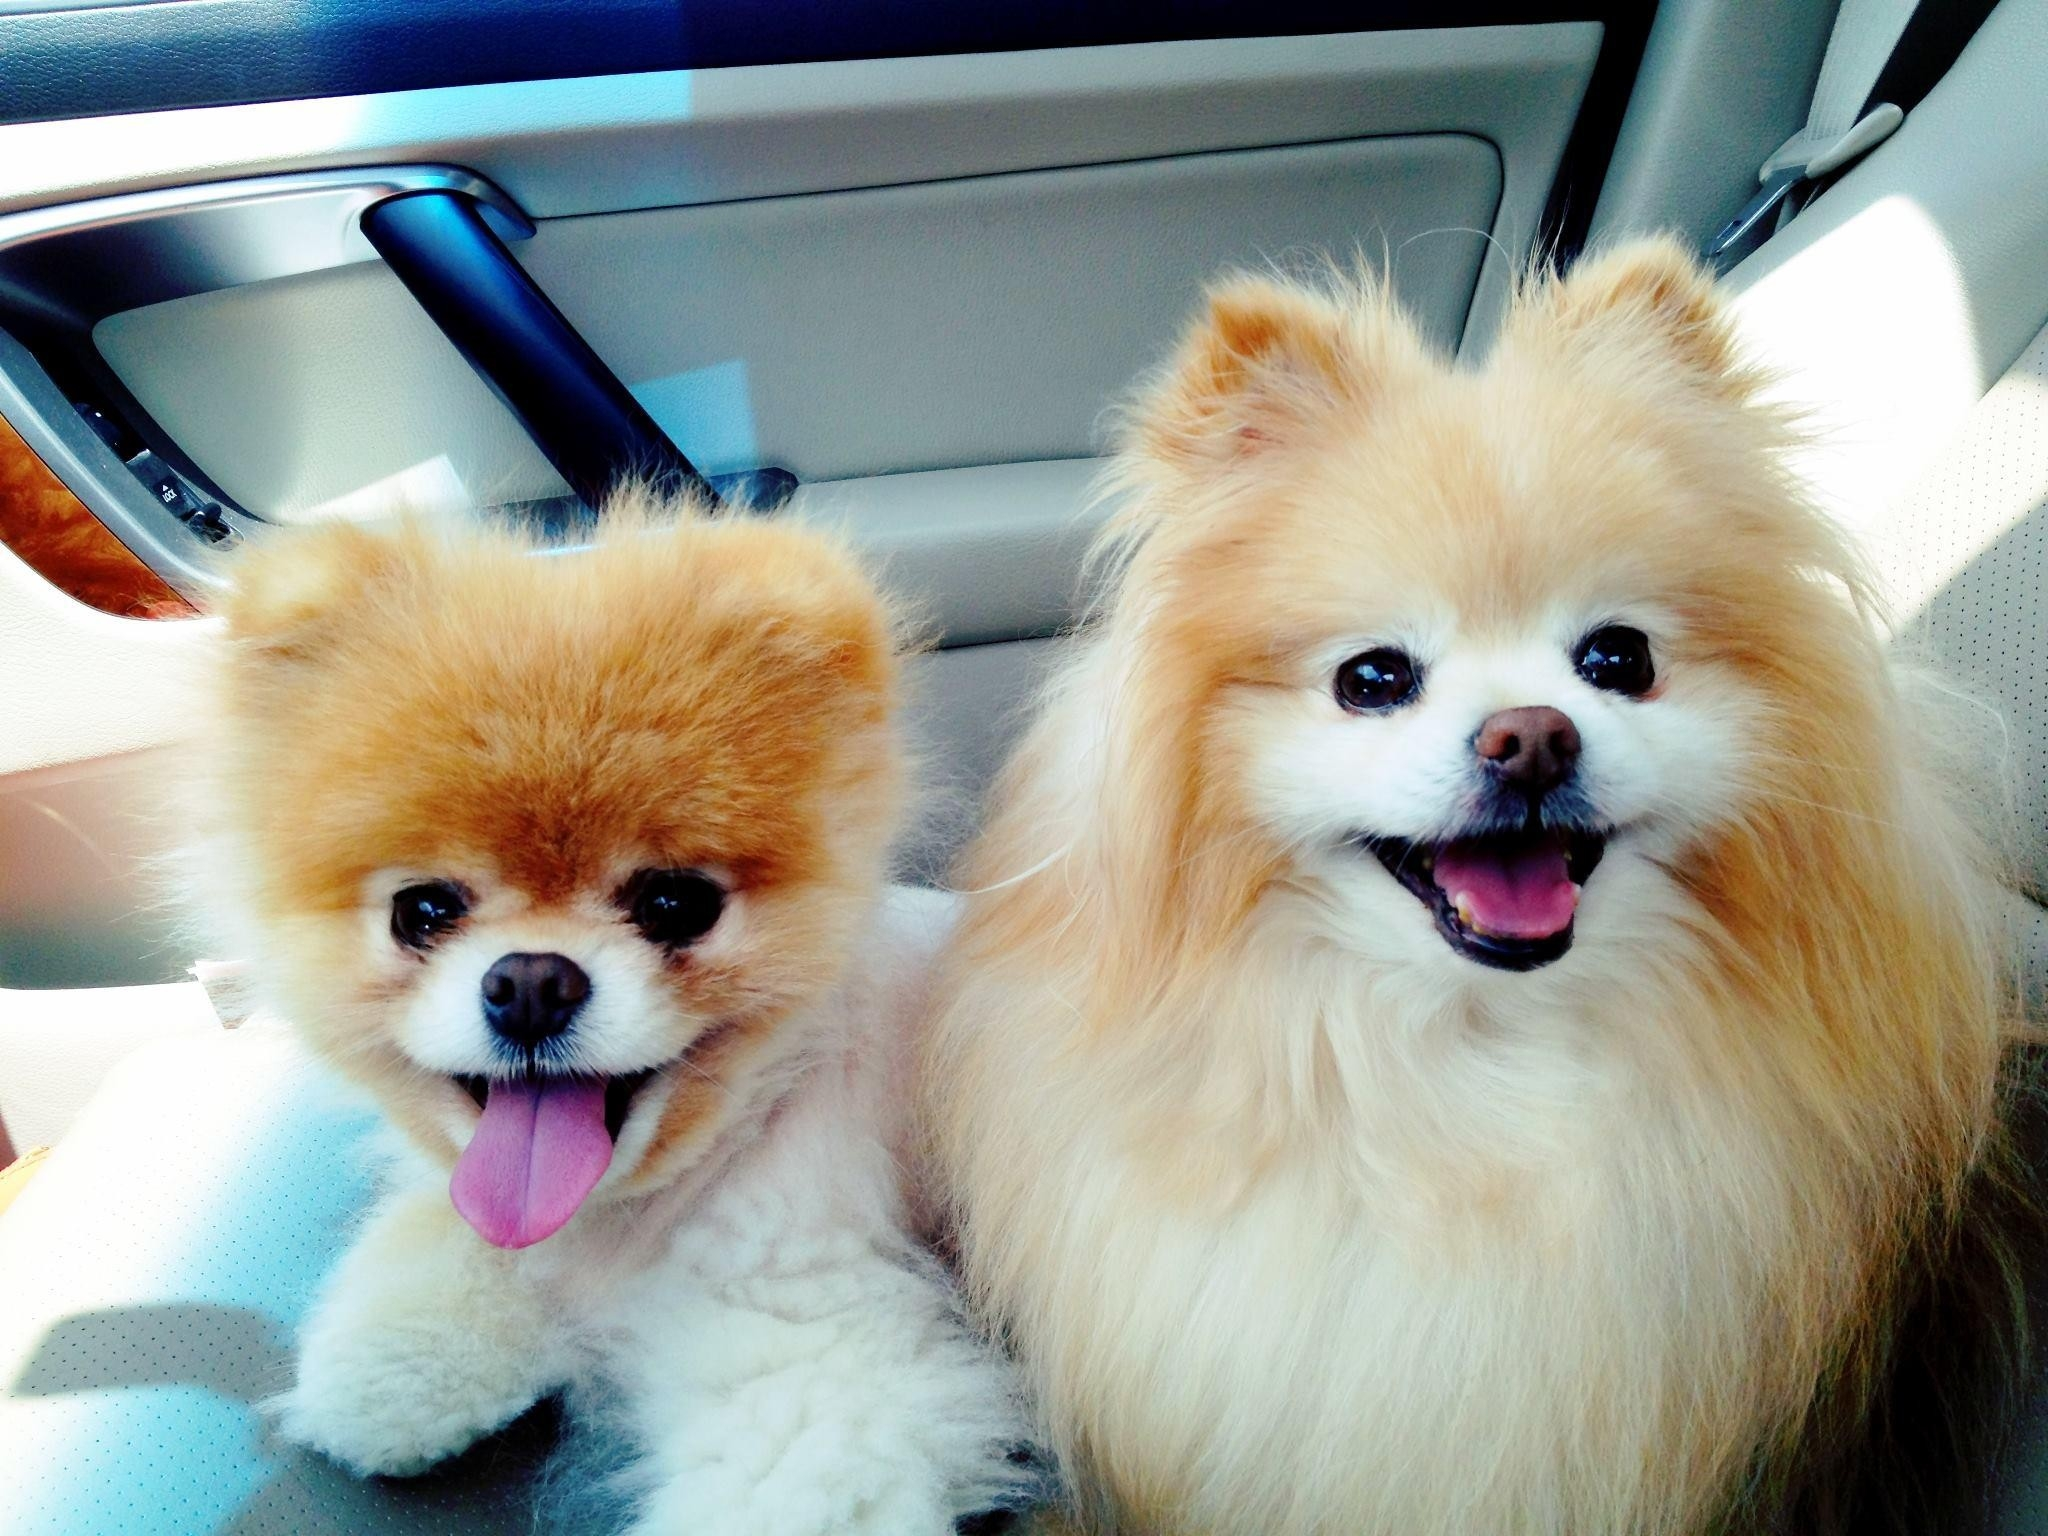 85017 download wallpaper Animals, Dogs, Car, Beautiful screensavers and pictures for free